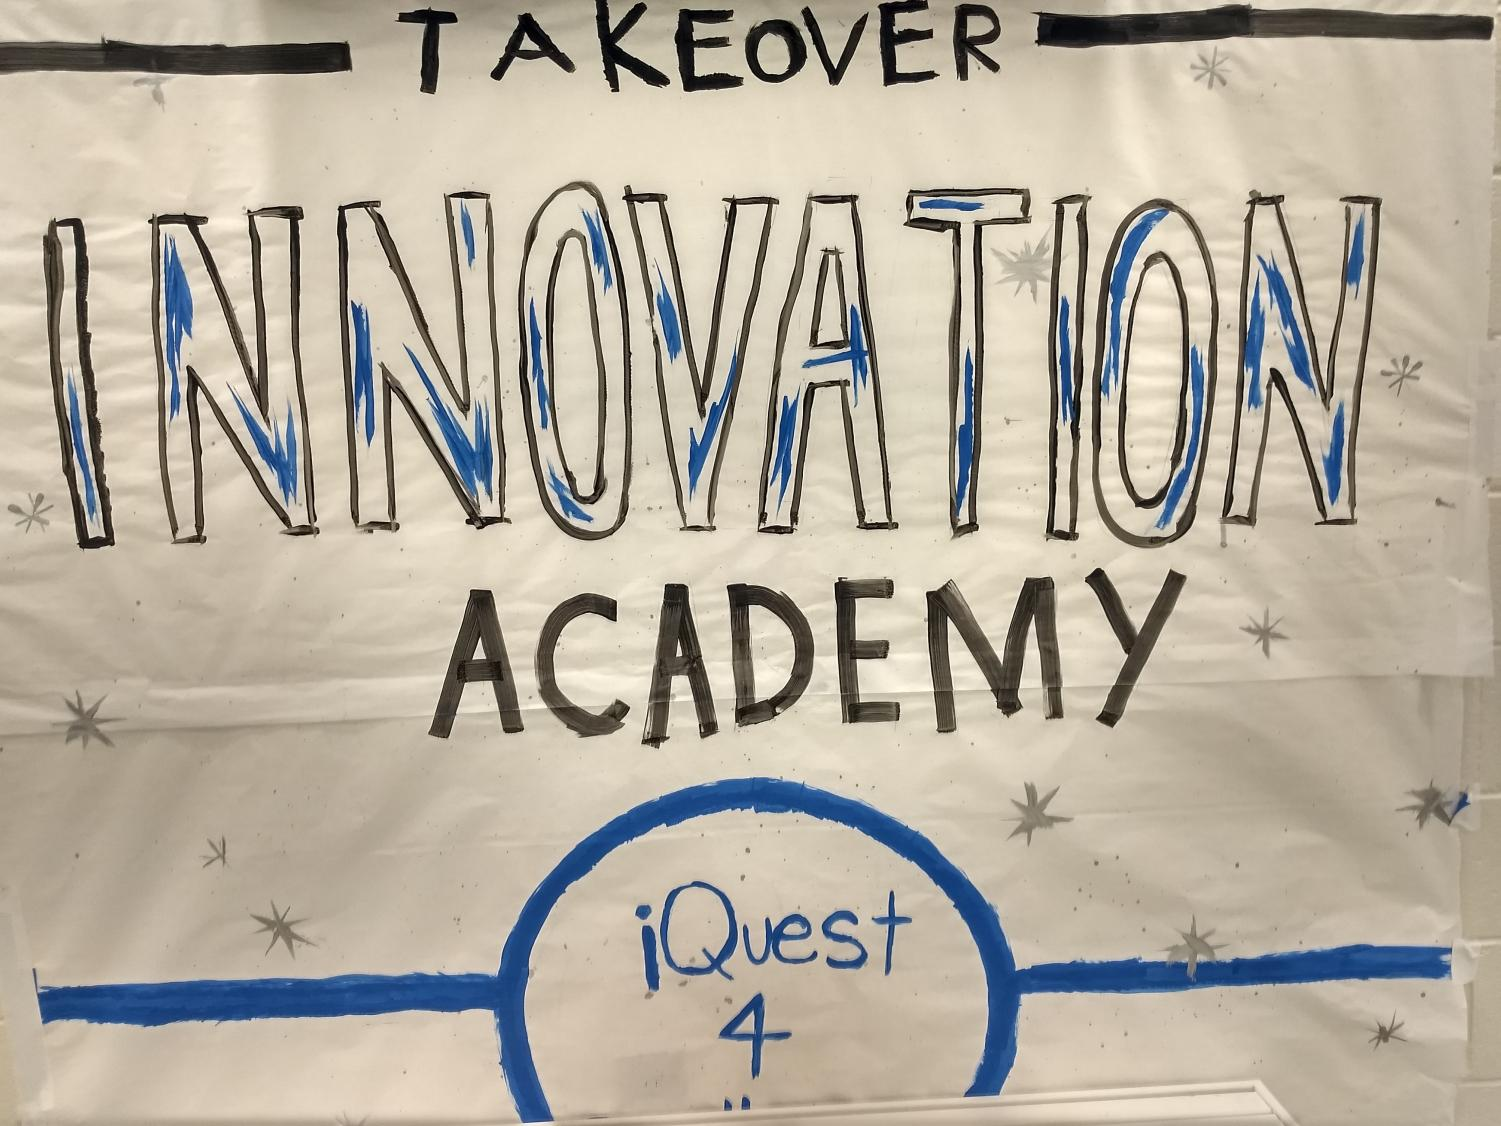 Questing for excellence. South's Innovation Academy is known for helping its students partake in creative risks to reach their fullest potential. The school participated in the Innovation Academy takeover during the month of November.